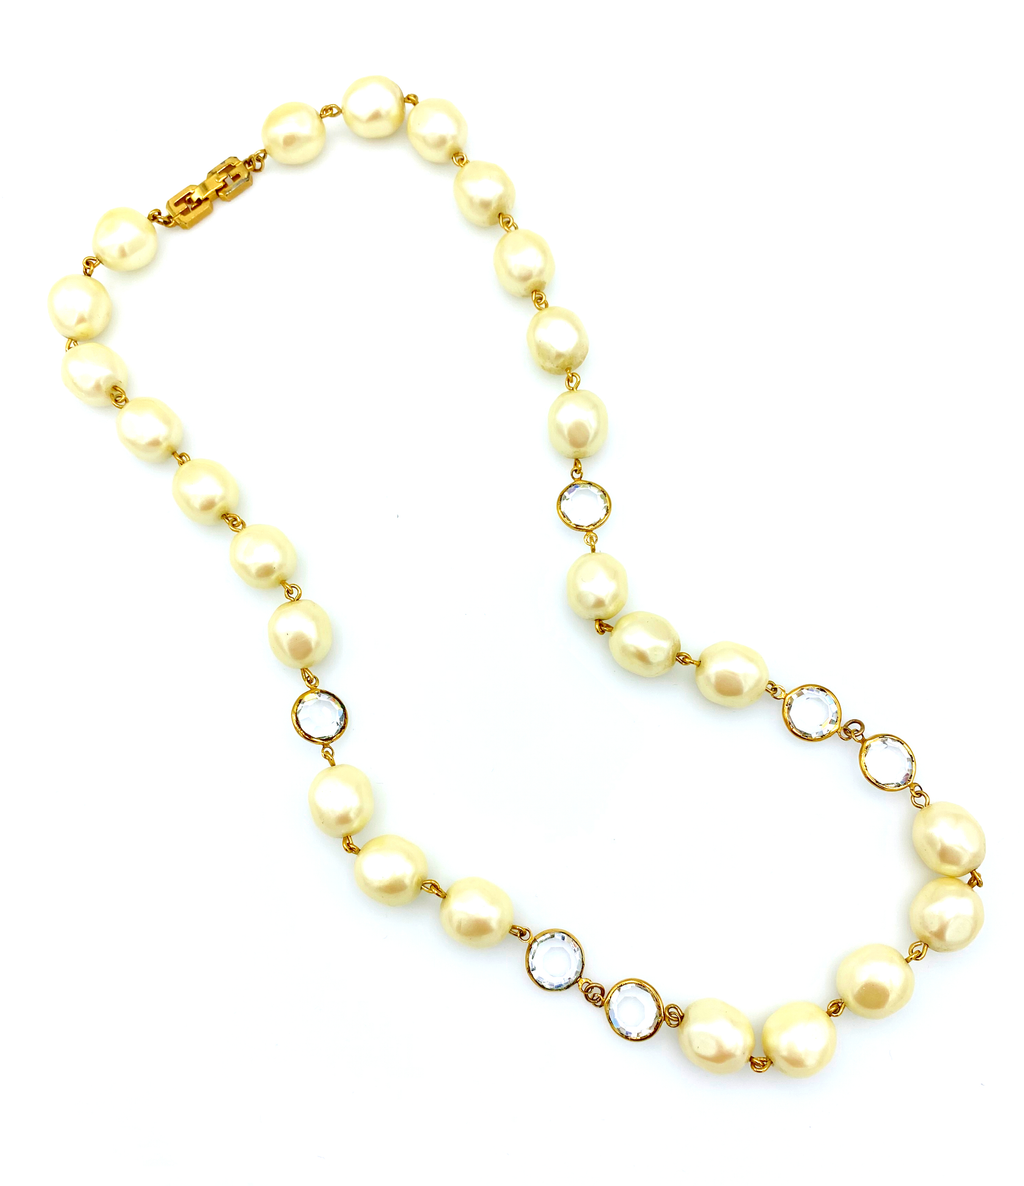 Givenchy Pearl & Crystal Vintage Necklace-Sustainable Fashion with Vintage Style-Trending Designer Fashion-24 Wishes